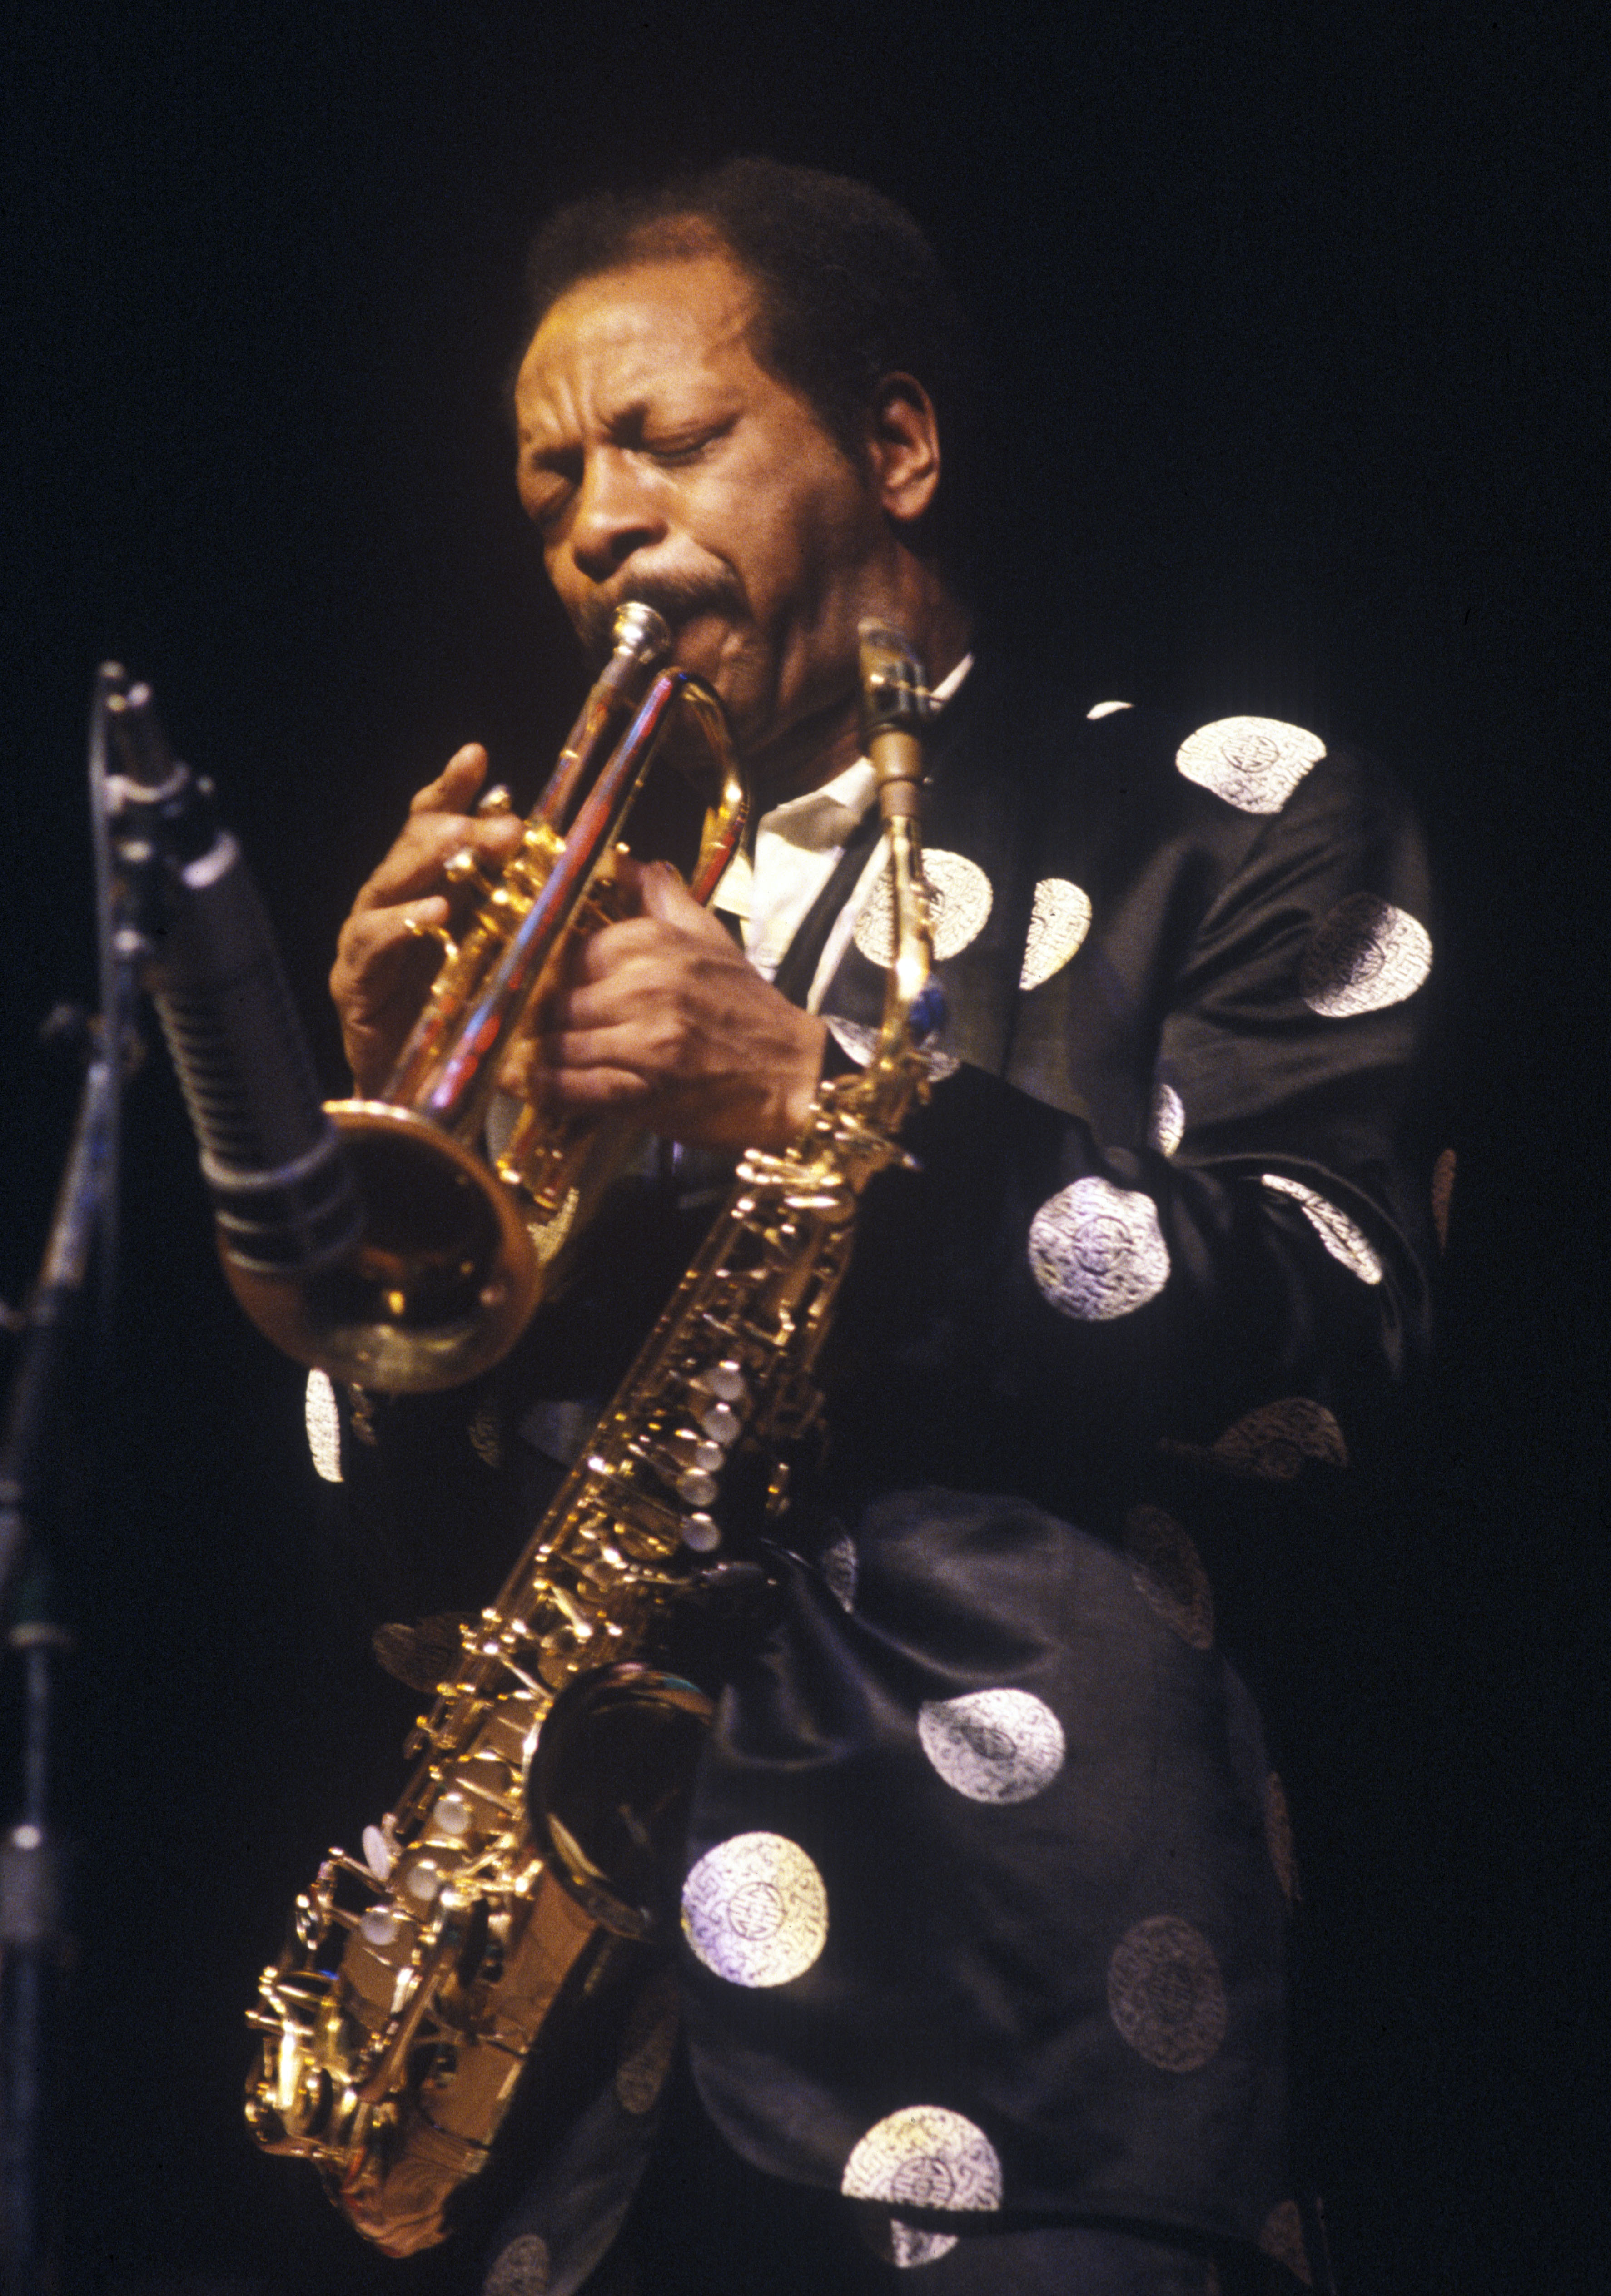 Ornette Coleman at the Power Center, February 18, 1982 image